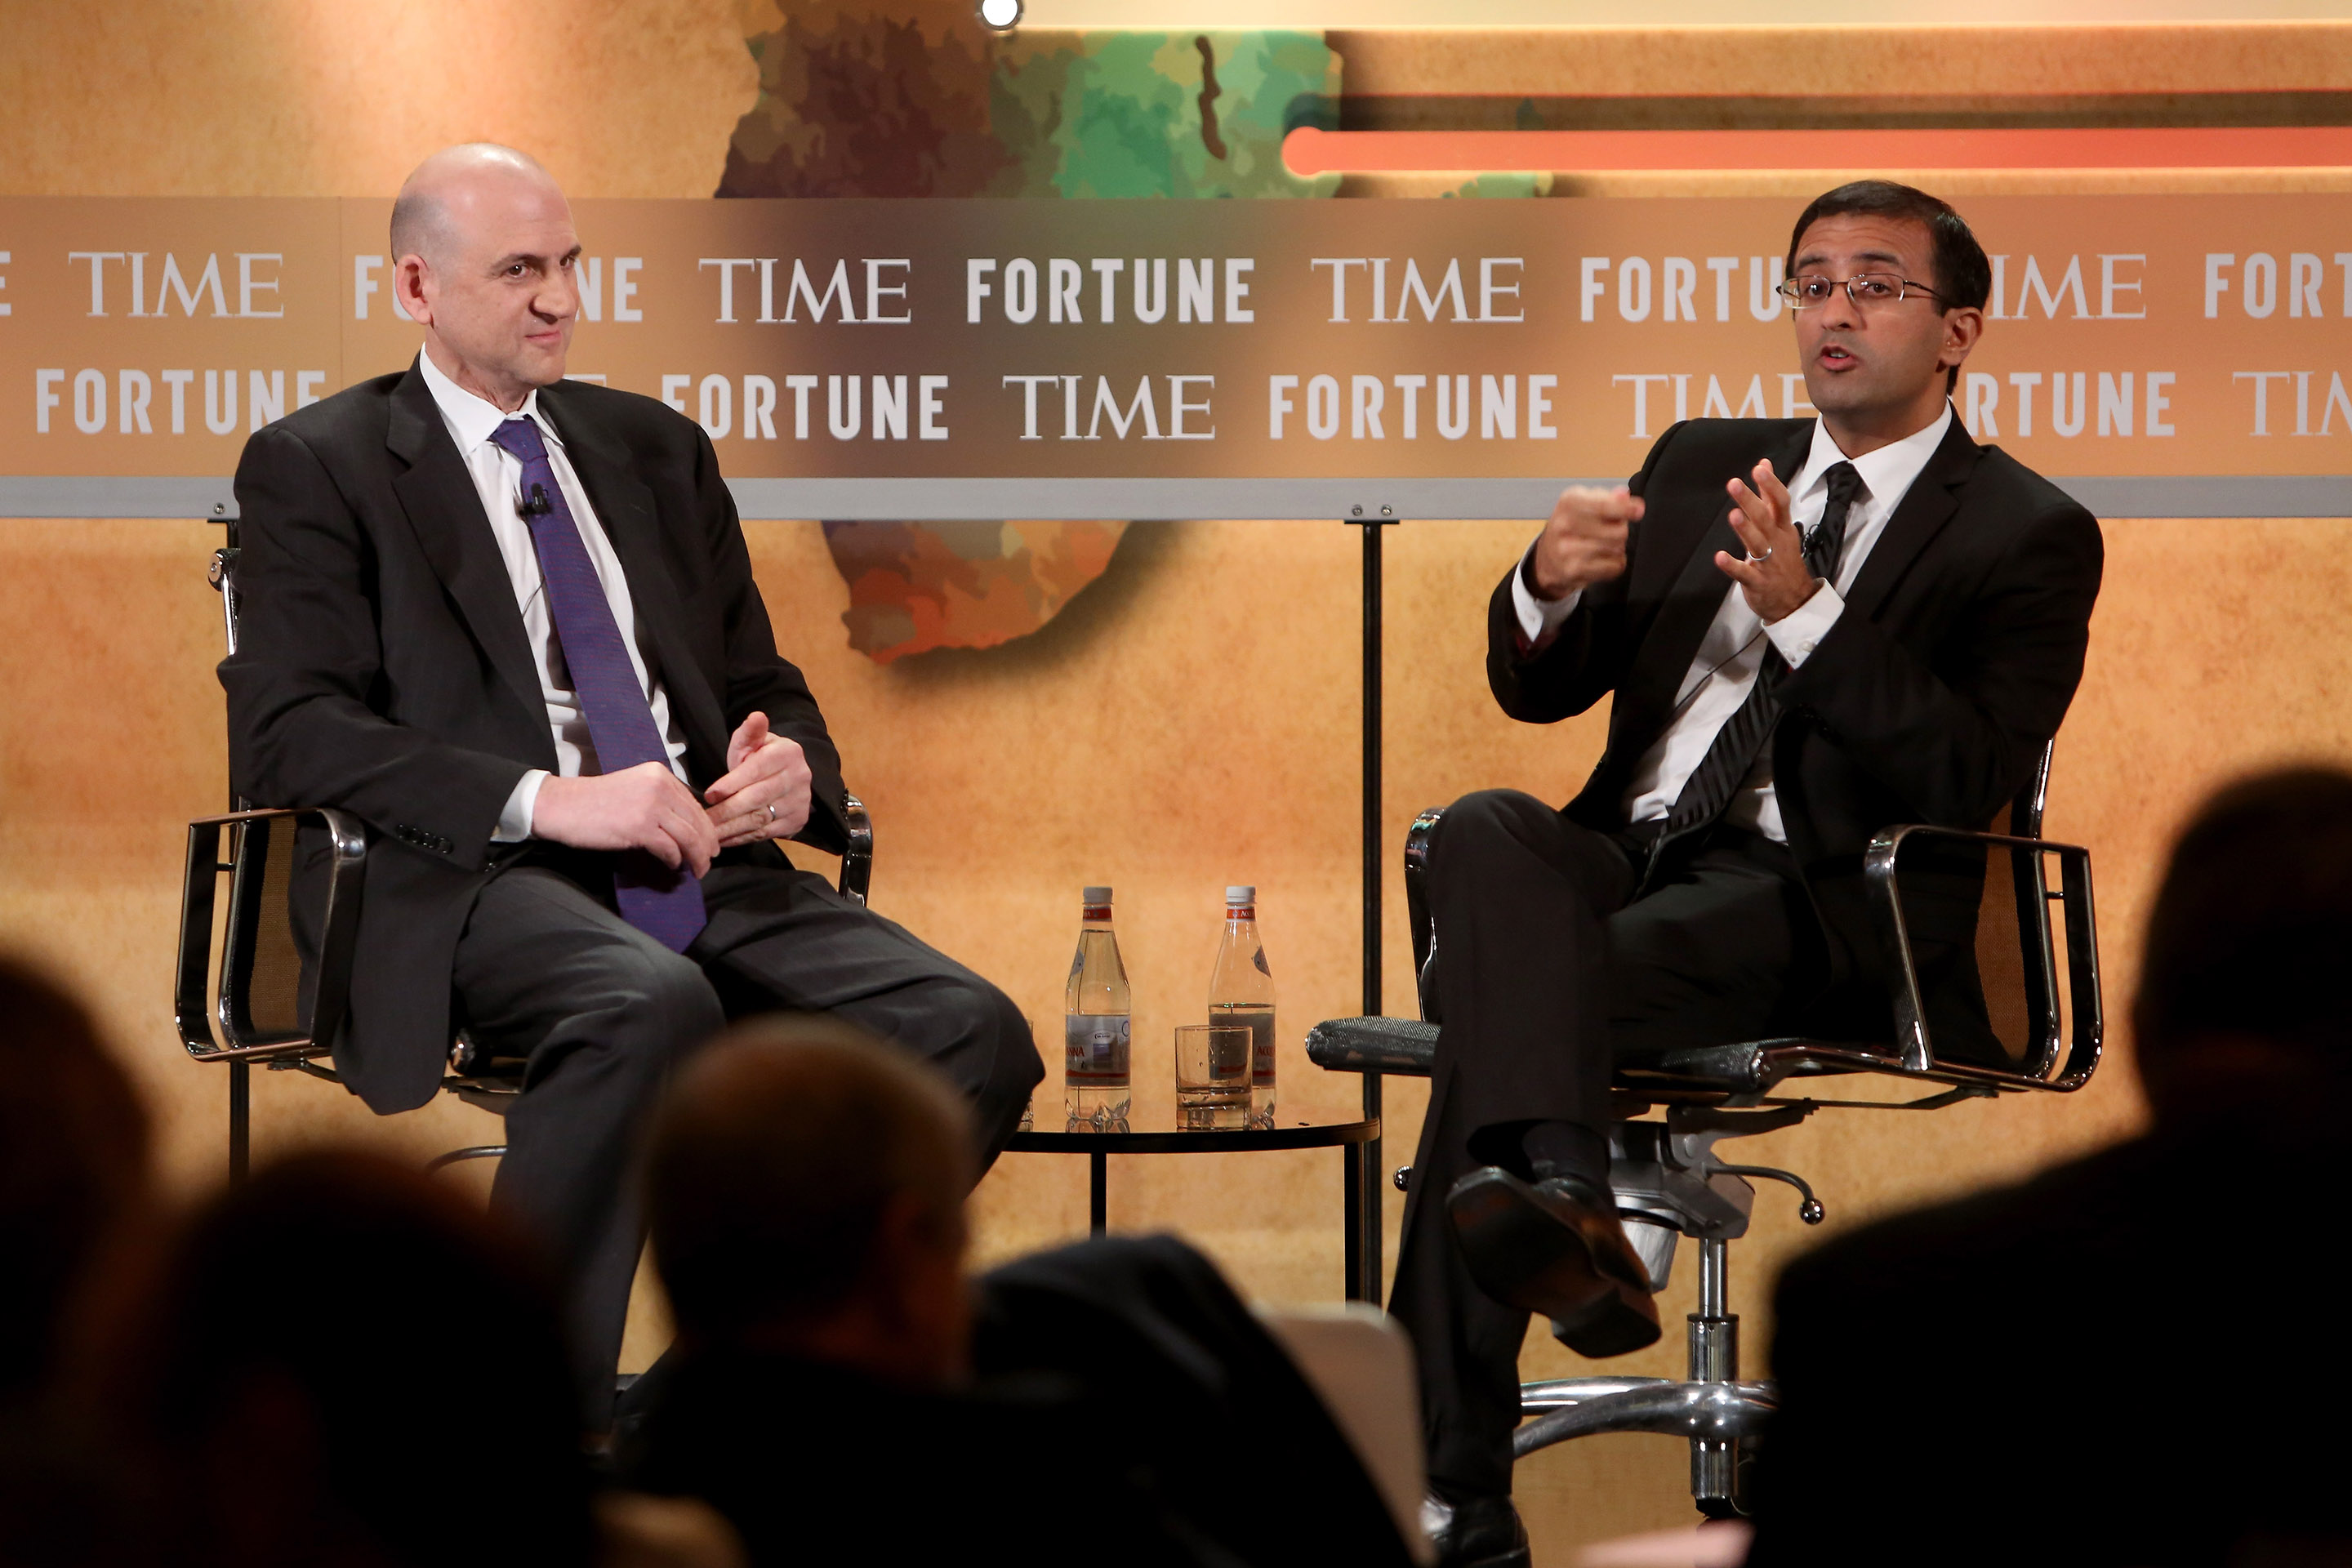 Fortune + Time Global Forum 2016